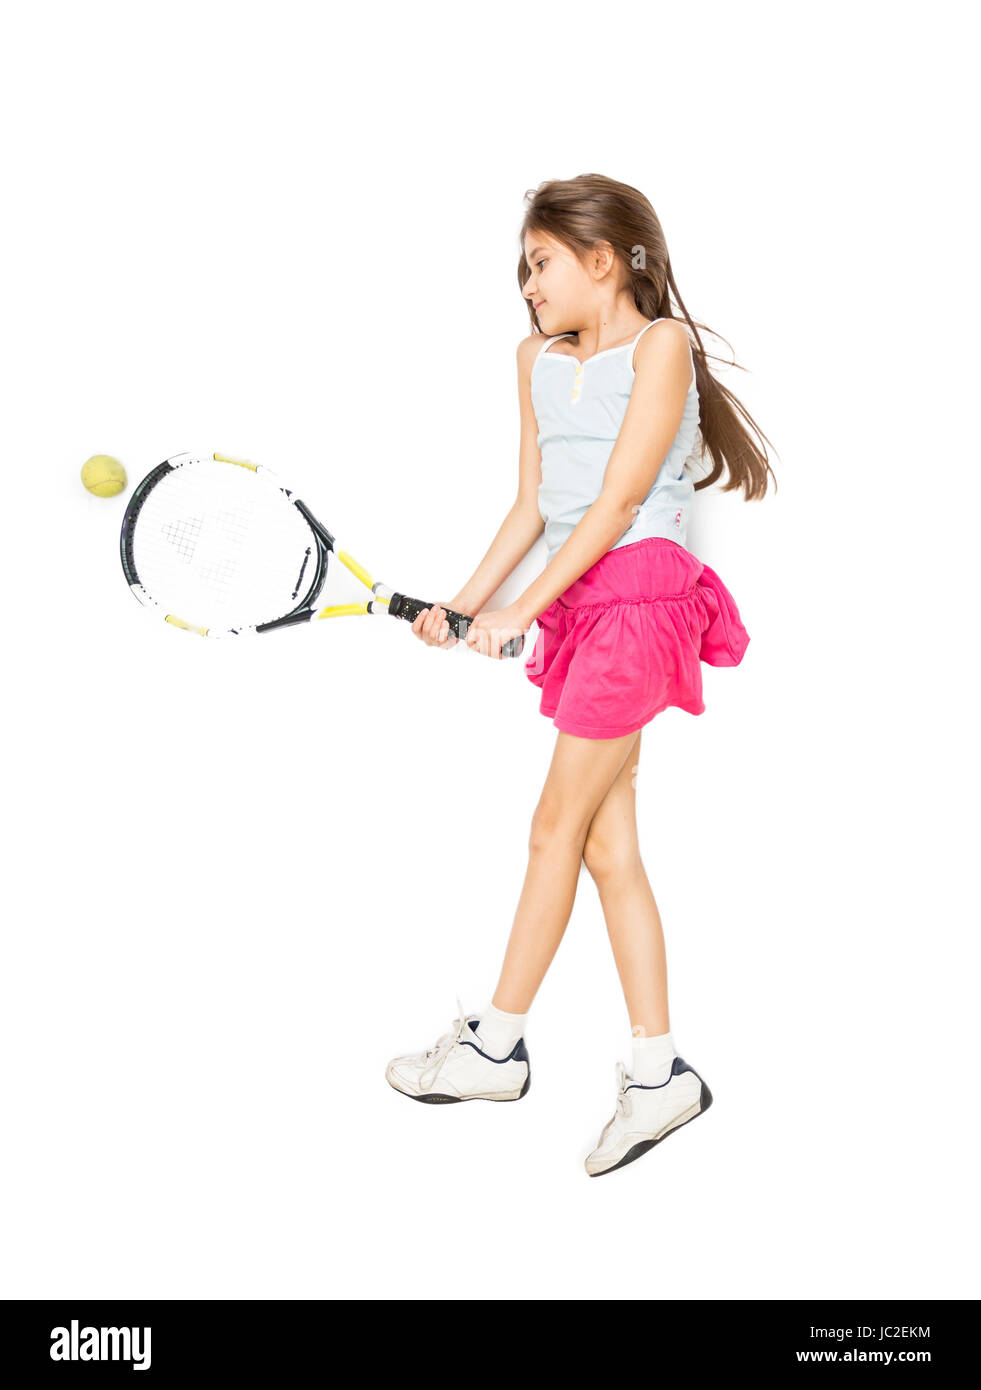 Isolated photo from high point of view of cute girl lying on floor and playing tennis - Stock Image